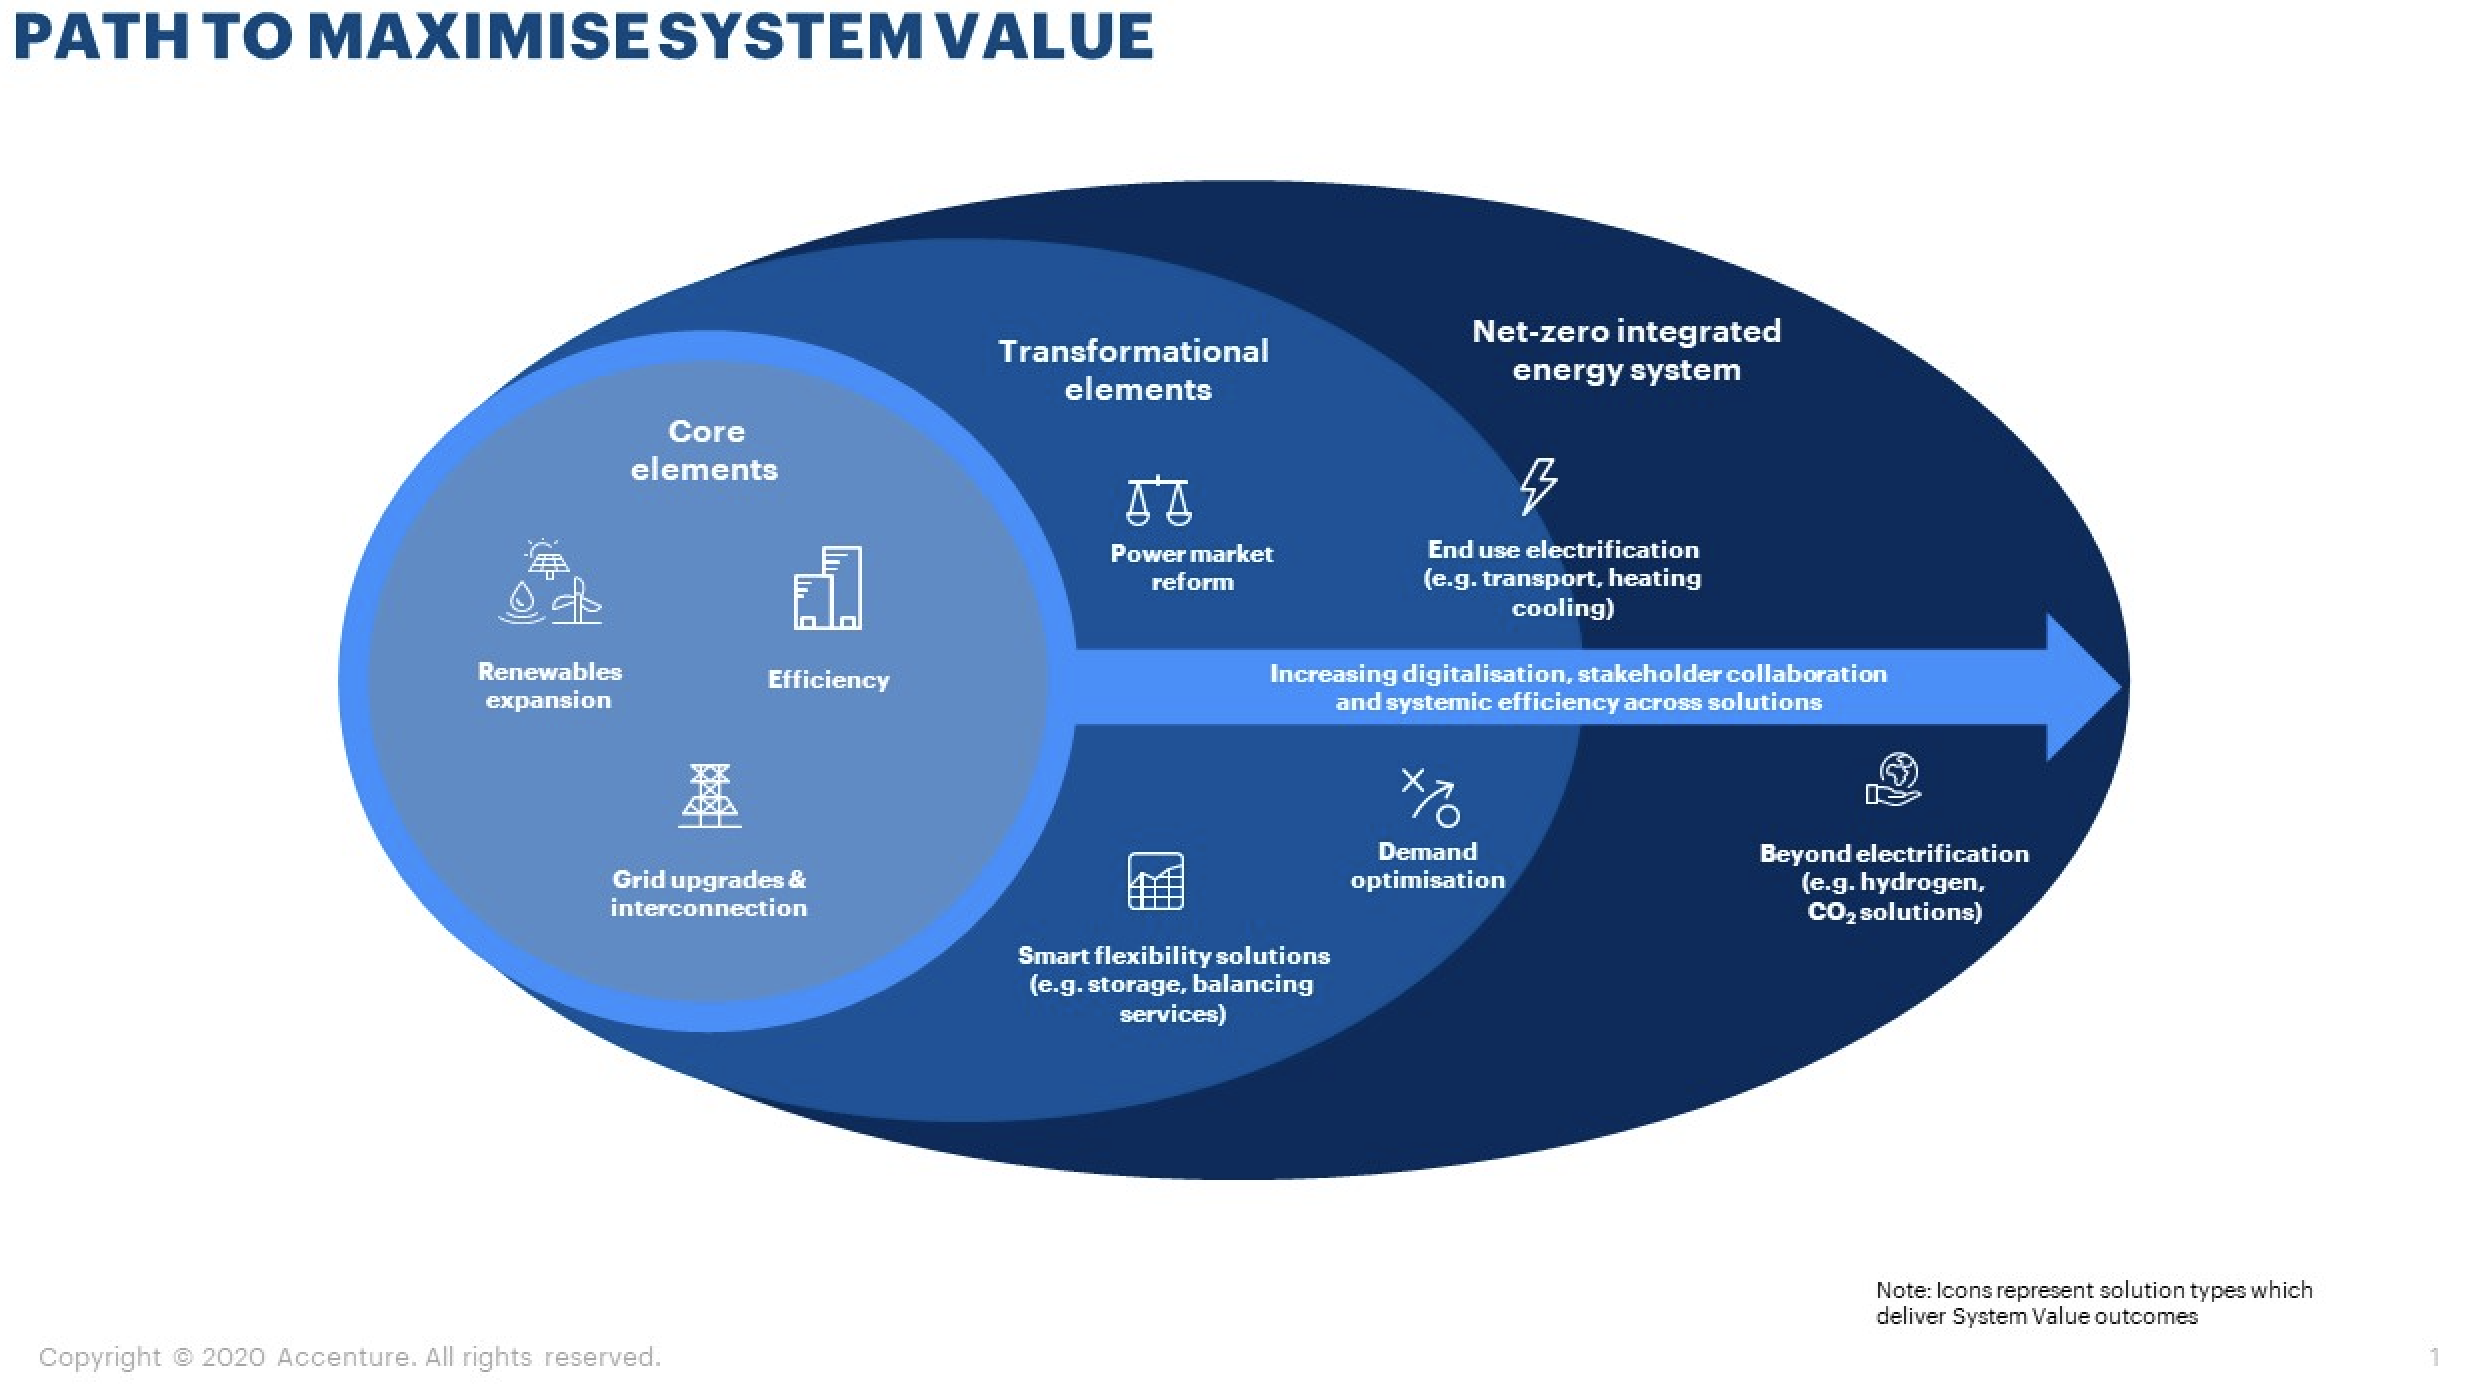 How can we make the most of the System Value framework?